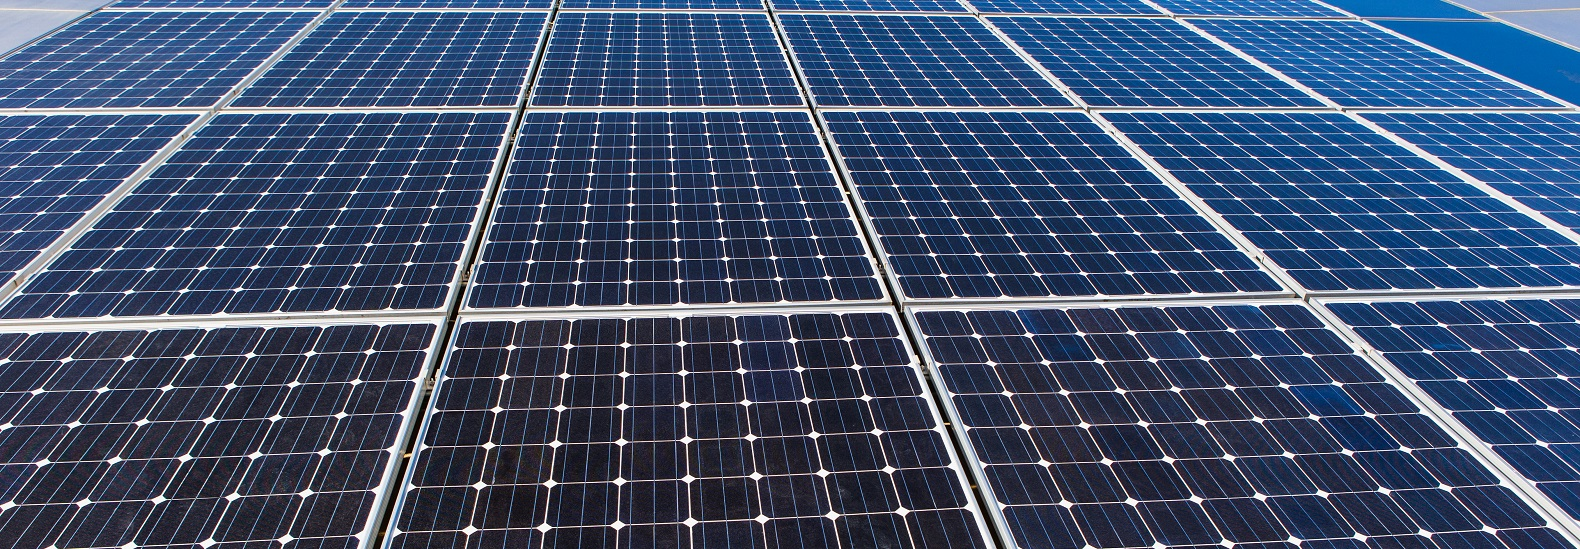 Waste crisis looms as thousands of solar panels reach end of life